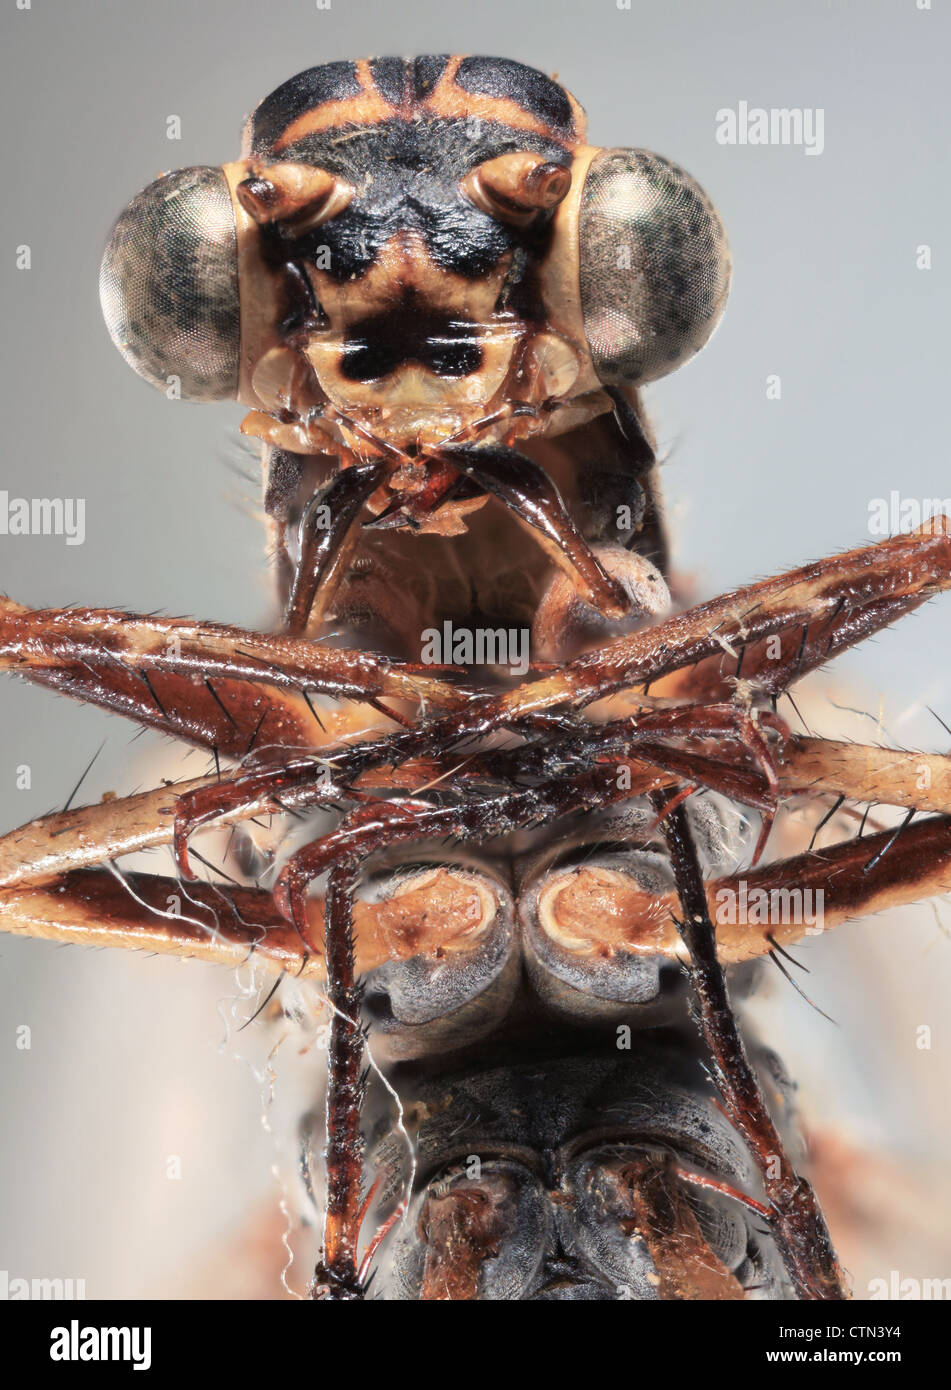 Ultra Macro frontal shoot of a brown dragonfly - Stock Image